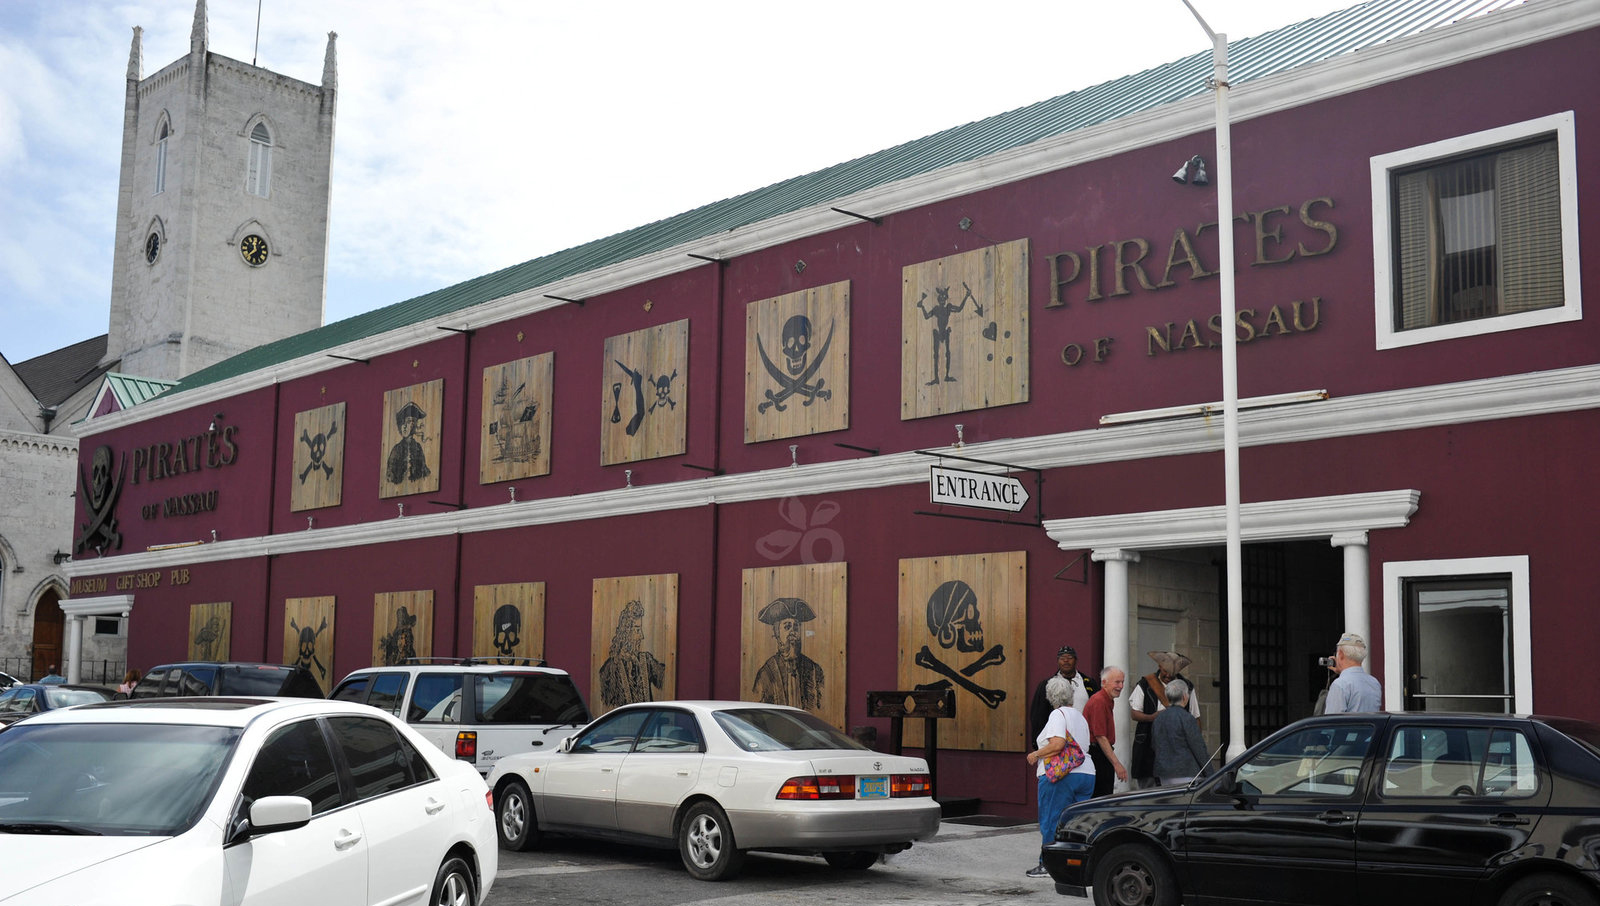 Pirates Of Nassau Museum TropicLinknet - Pirate museums in the us